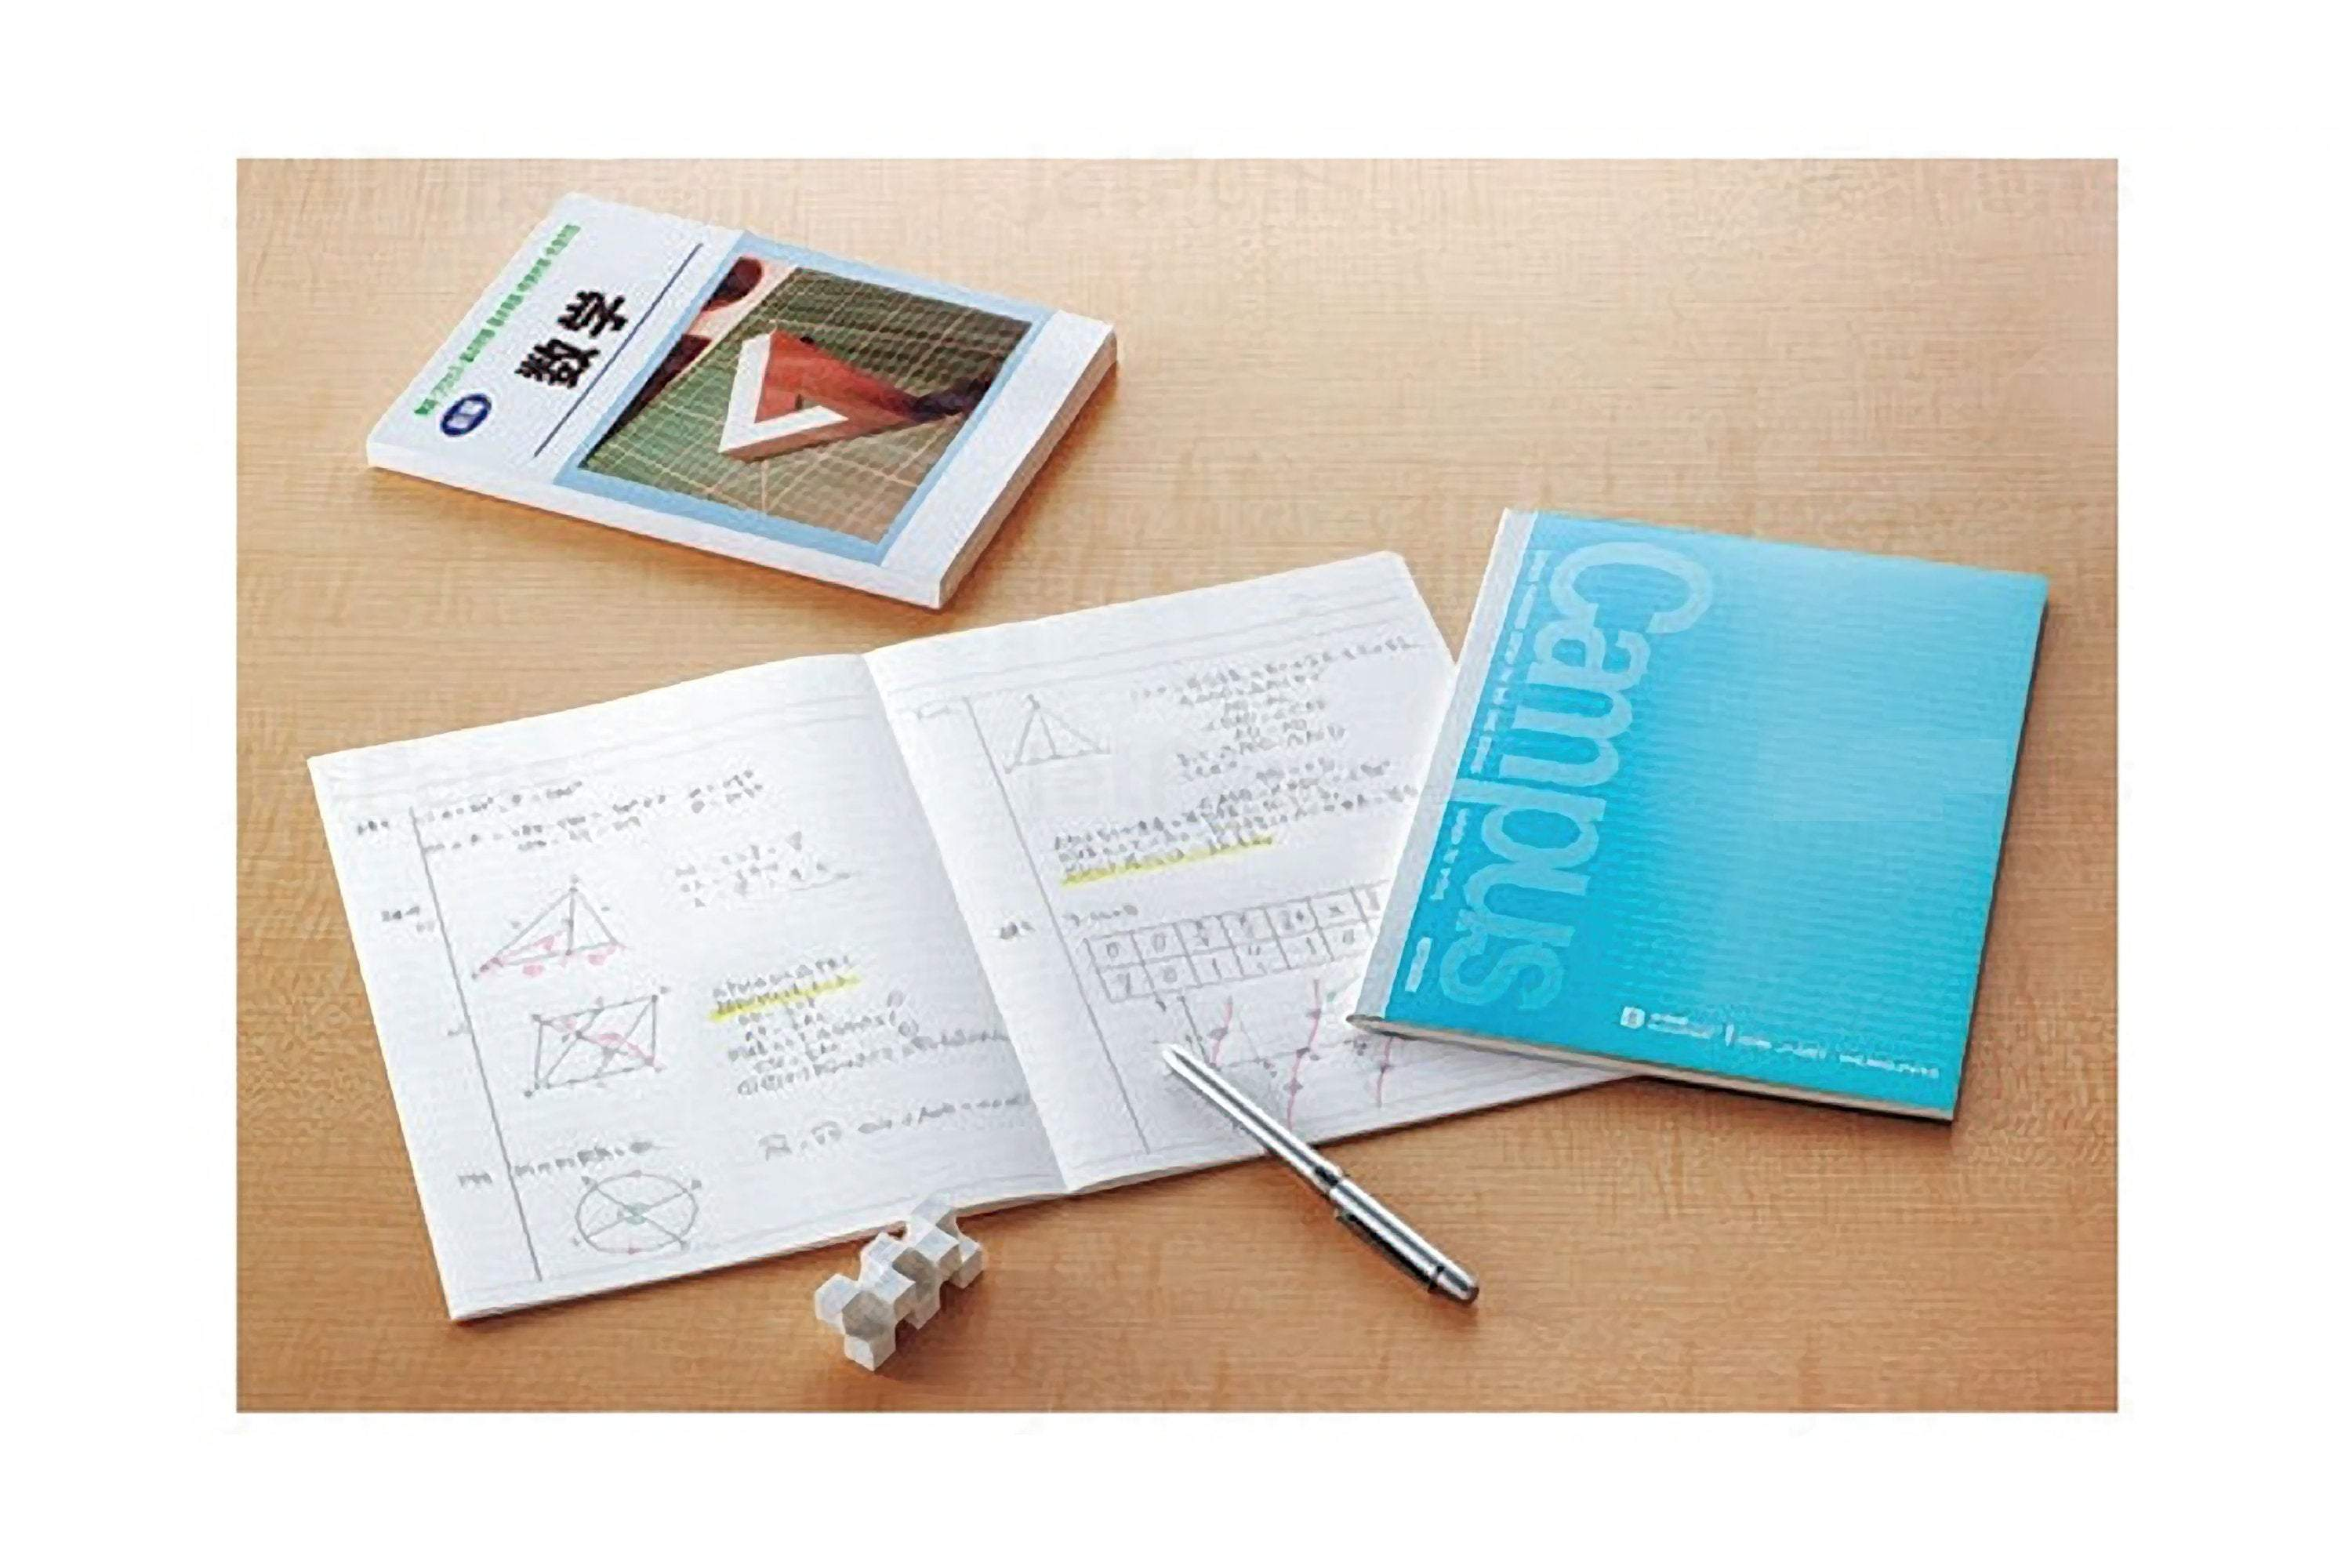 Kokuyo Campus Shikkari Loose Leaf Paper 836BT Dotted 6 mm Rule 26 Holes 100 Sheets 836BT | B5 - The Stationery Life!